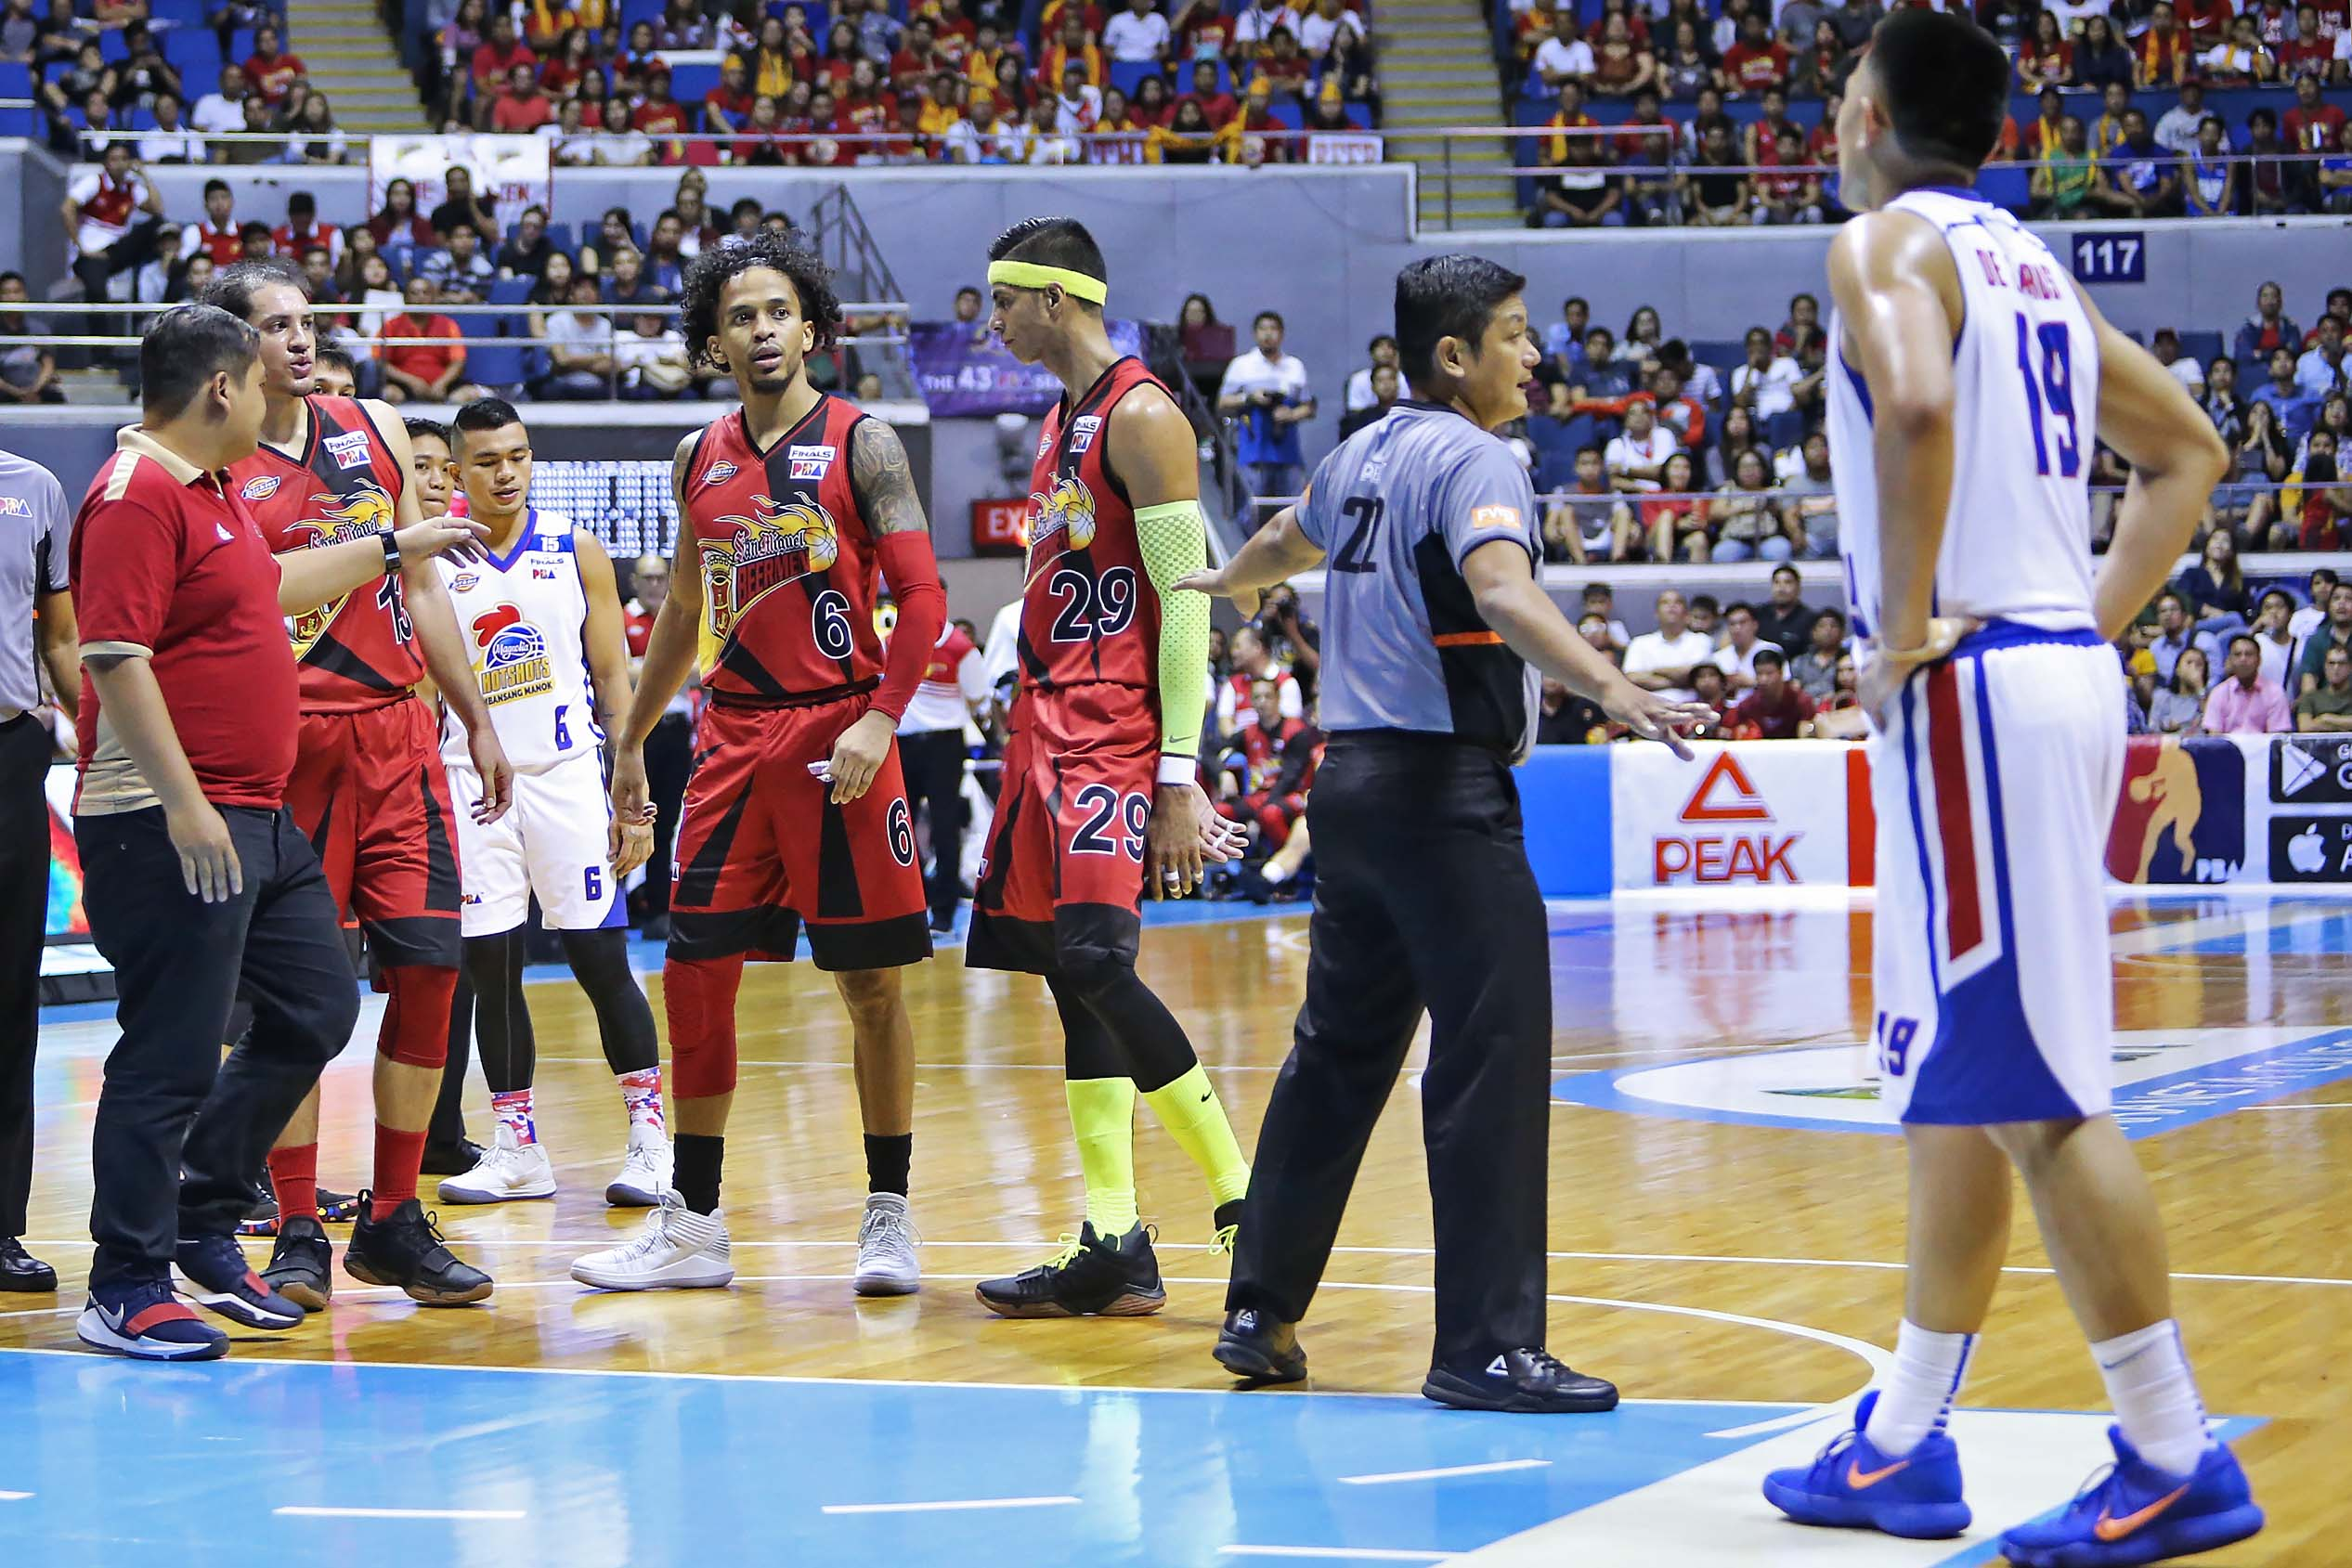 Chris Ross says taunt in response to a Magnolia player 'who did a cheap shot on me'